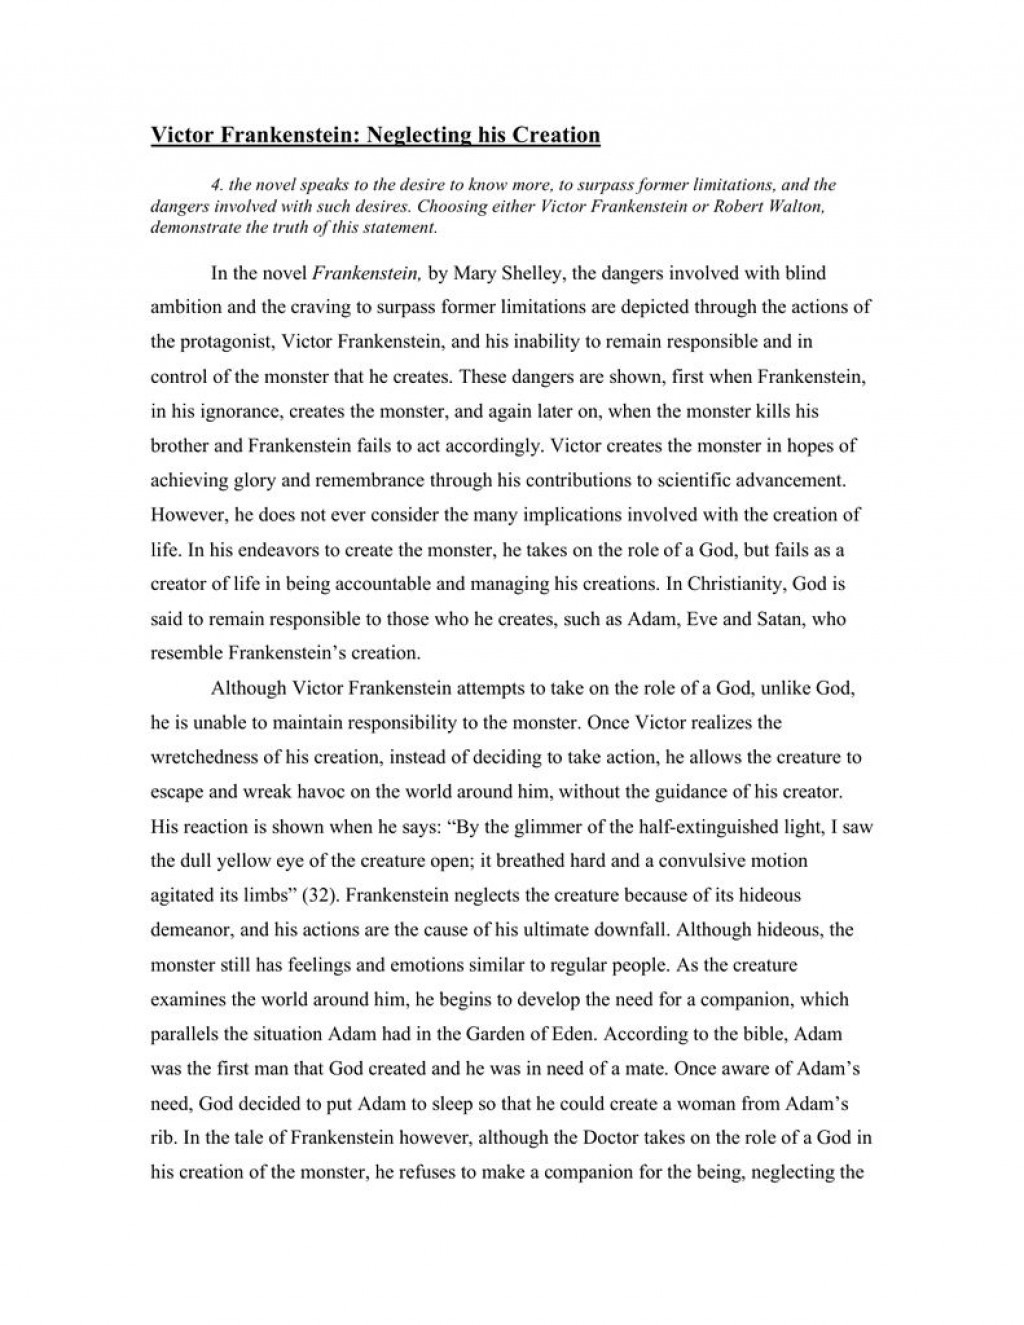 004 Fascinating Frankenstein Essay Idea  Critical Pdf Question Who I The Real MonsterLarge